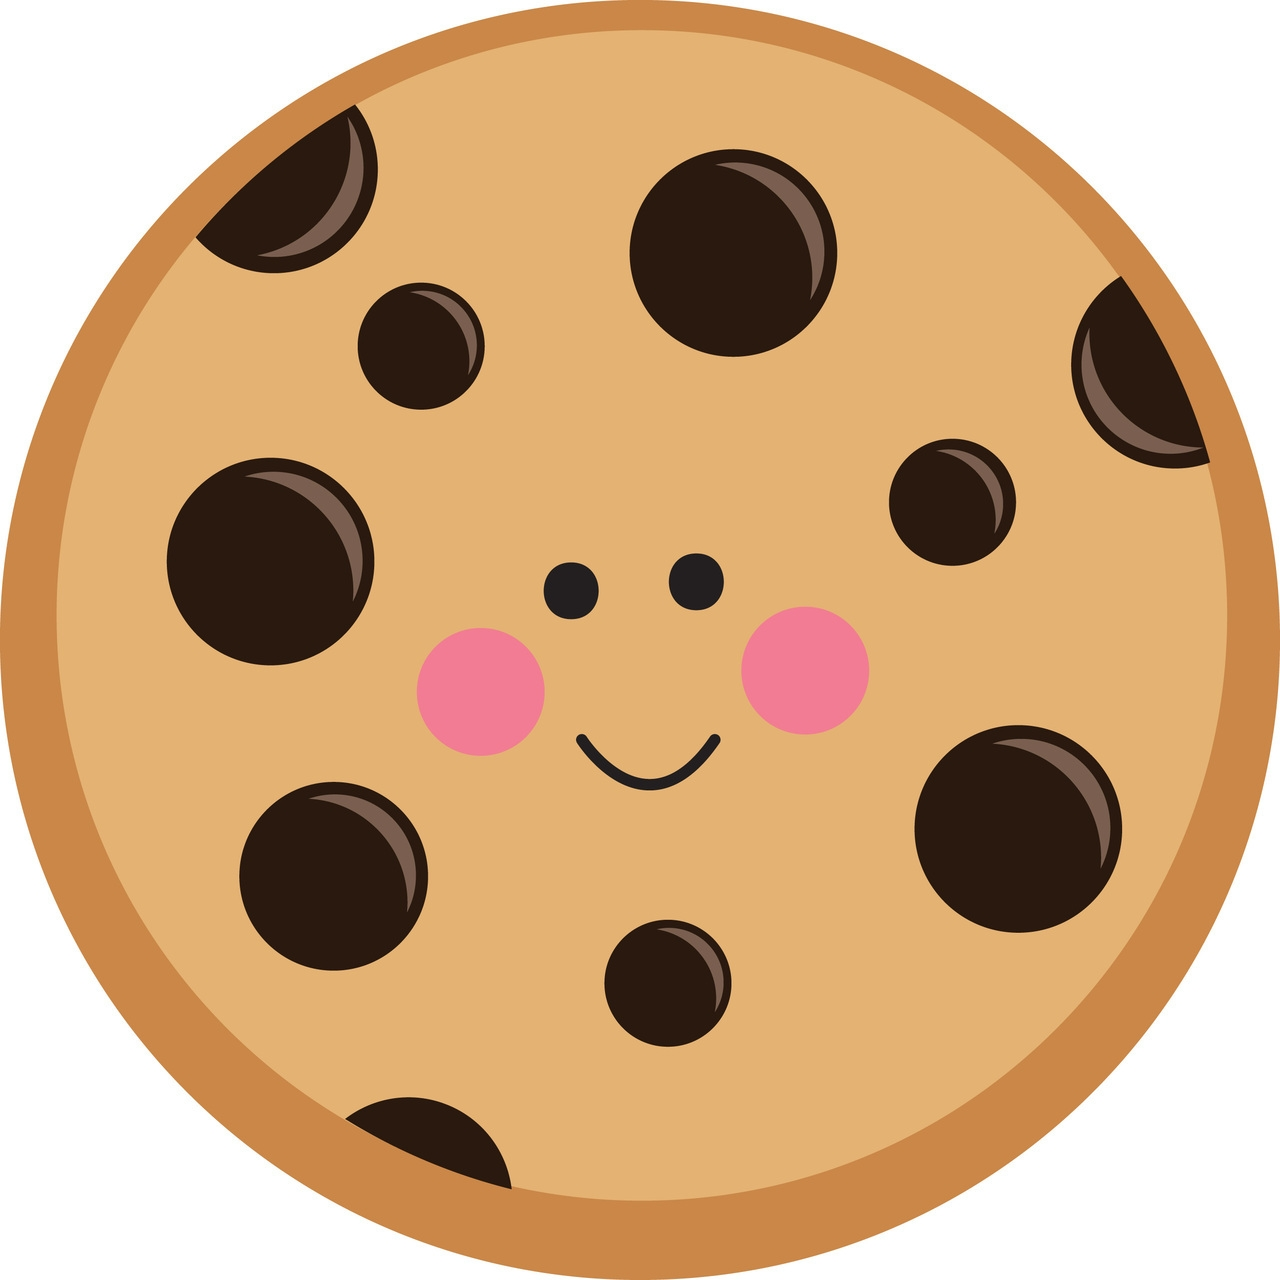 1280x1280 Best Of Chocolate Chip Cookie Clipart Collection